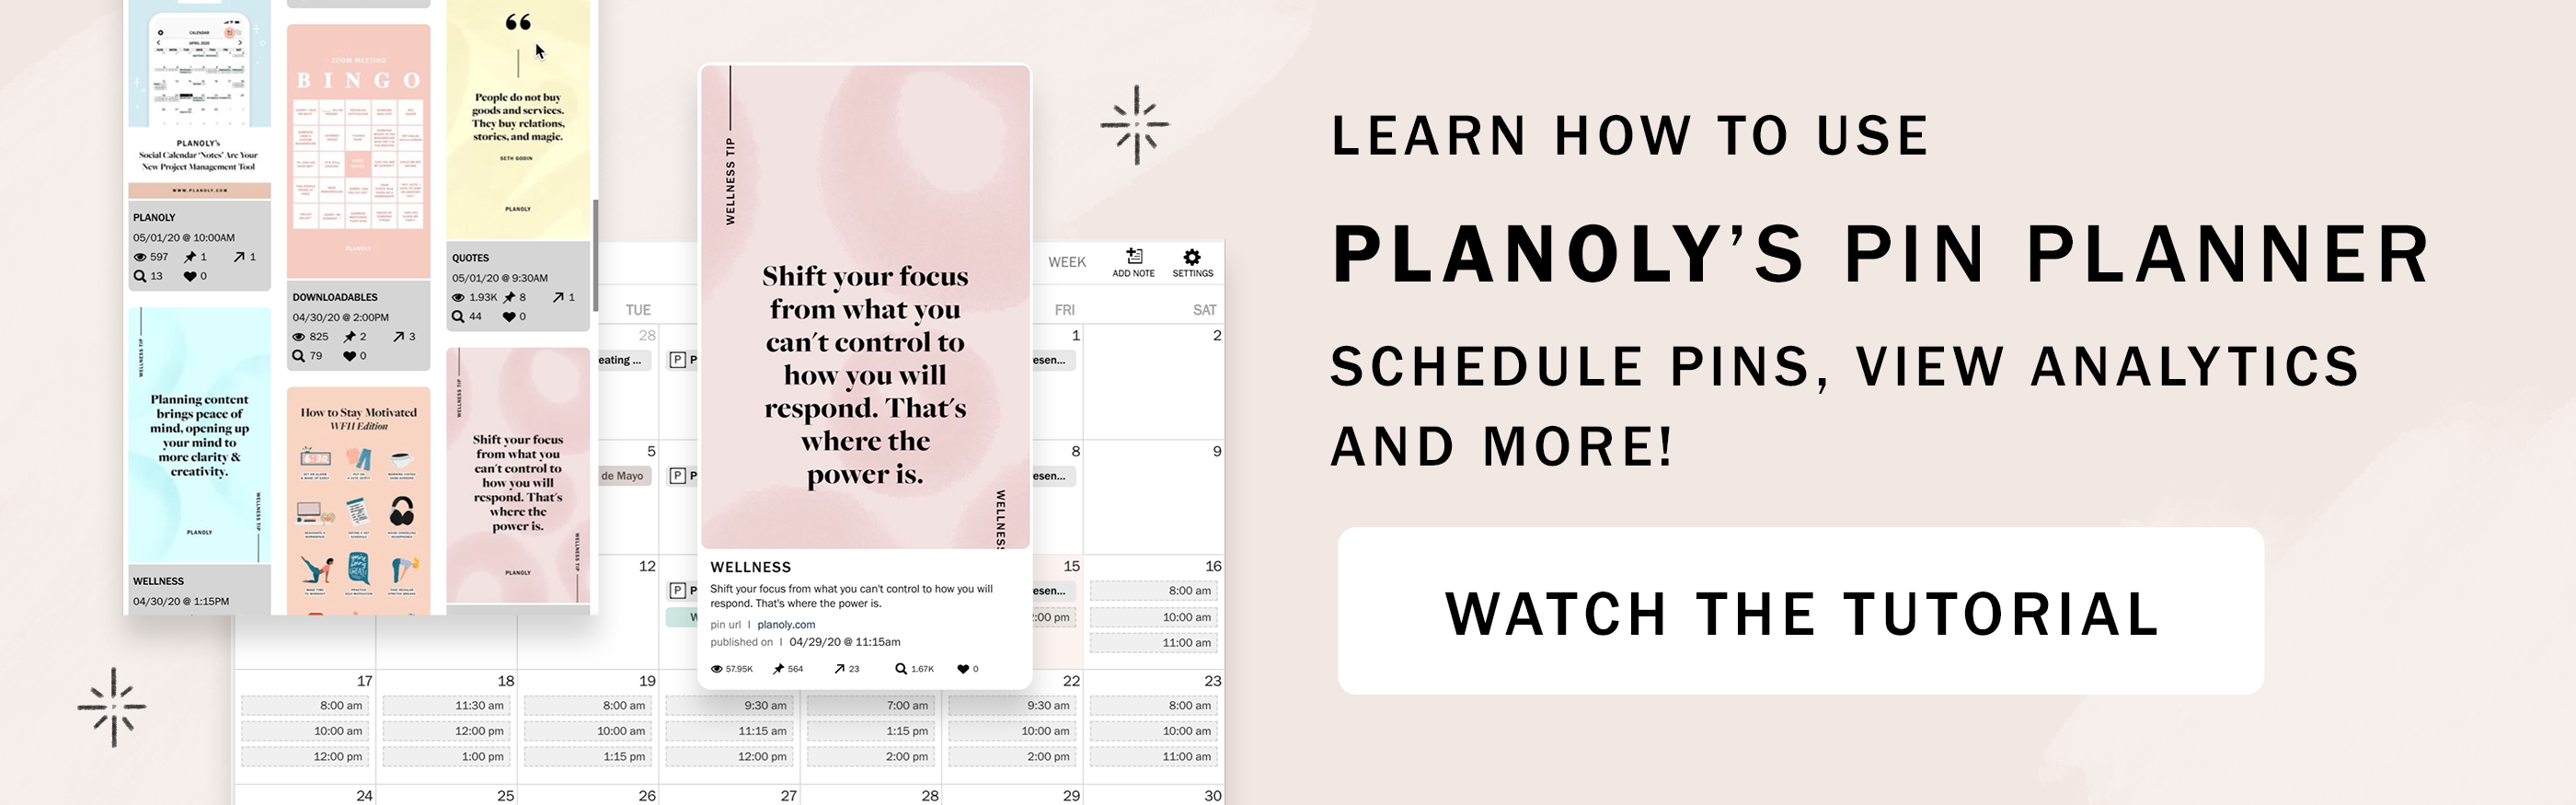 PLANOLY - Blog Post - Pinterest for Business - CTA Image